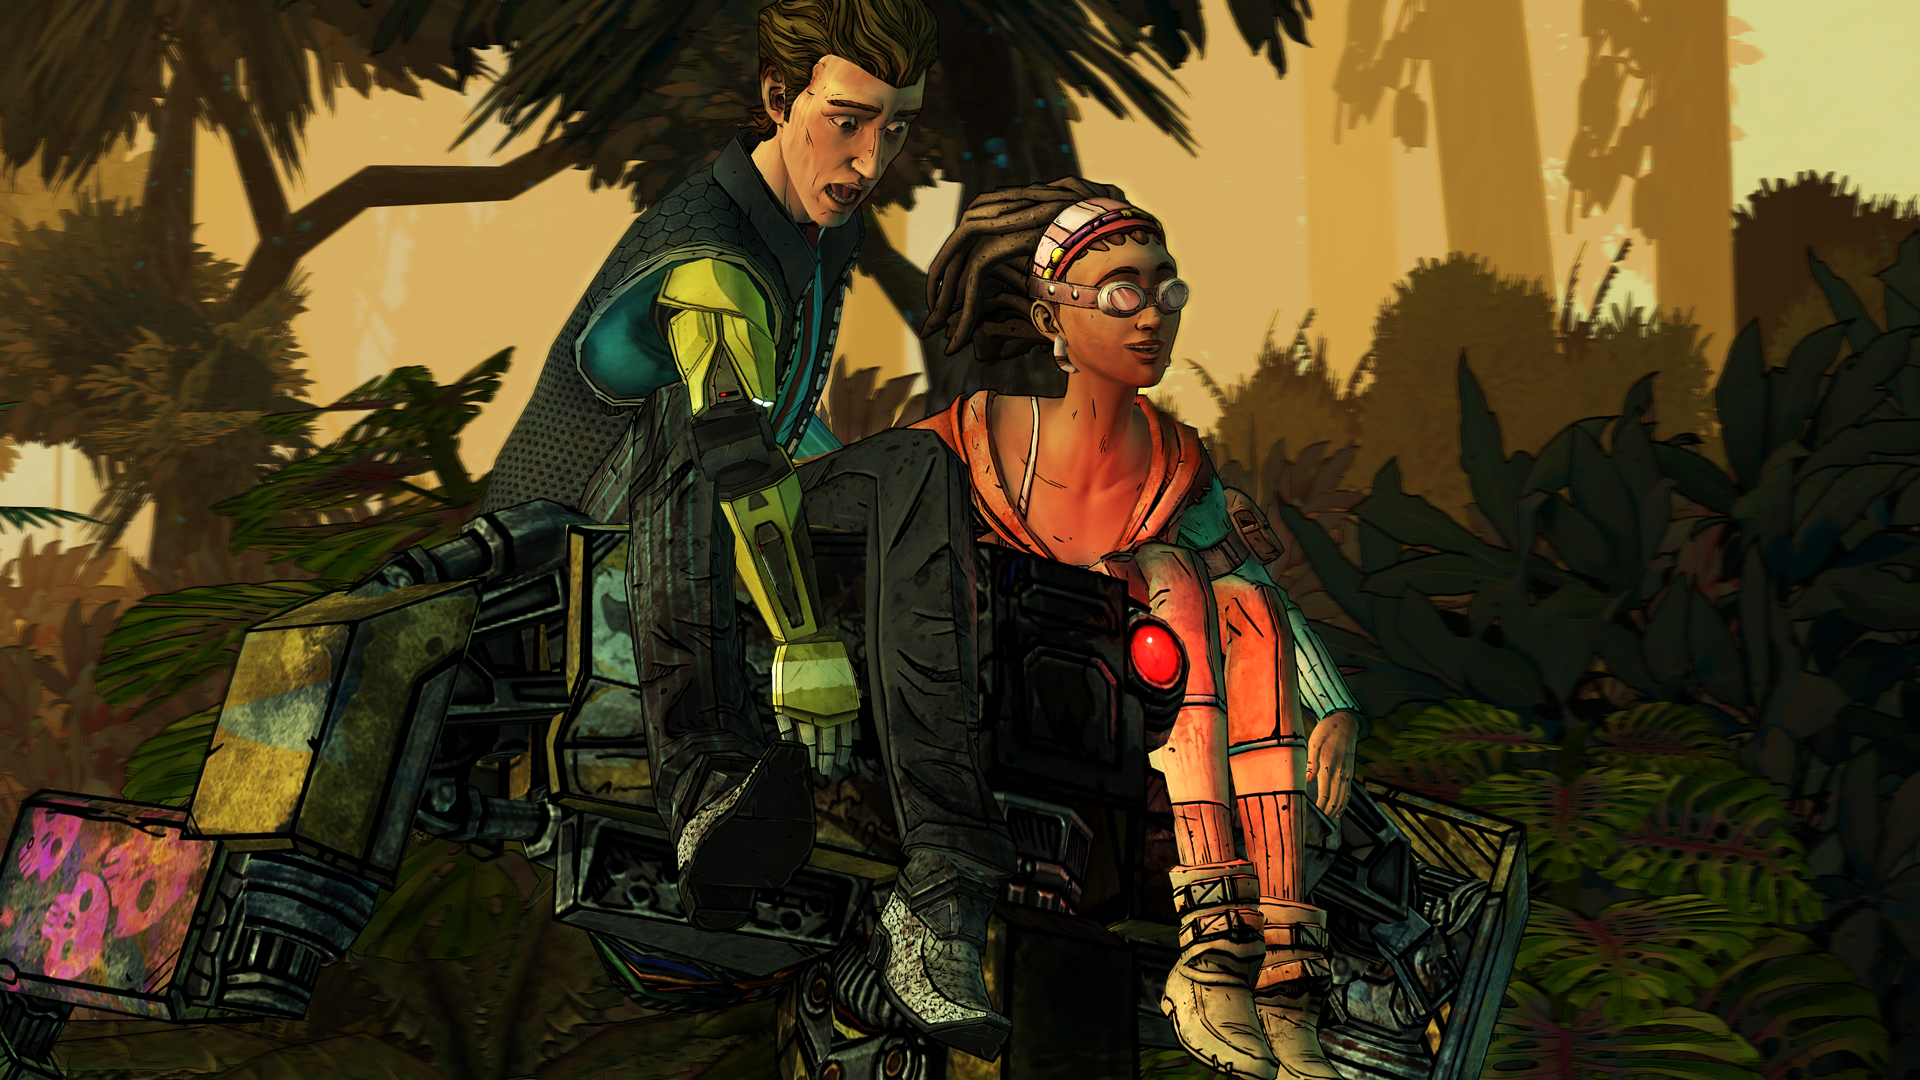 tales-from-the-borderlands-episode-3-catch-a-ride-2